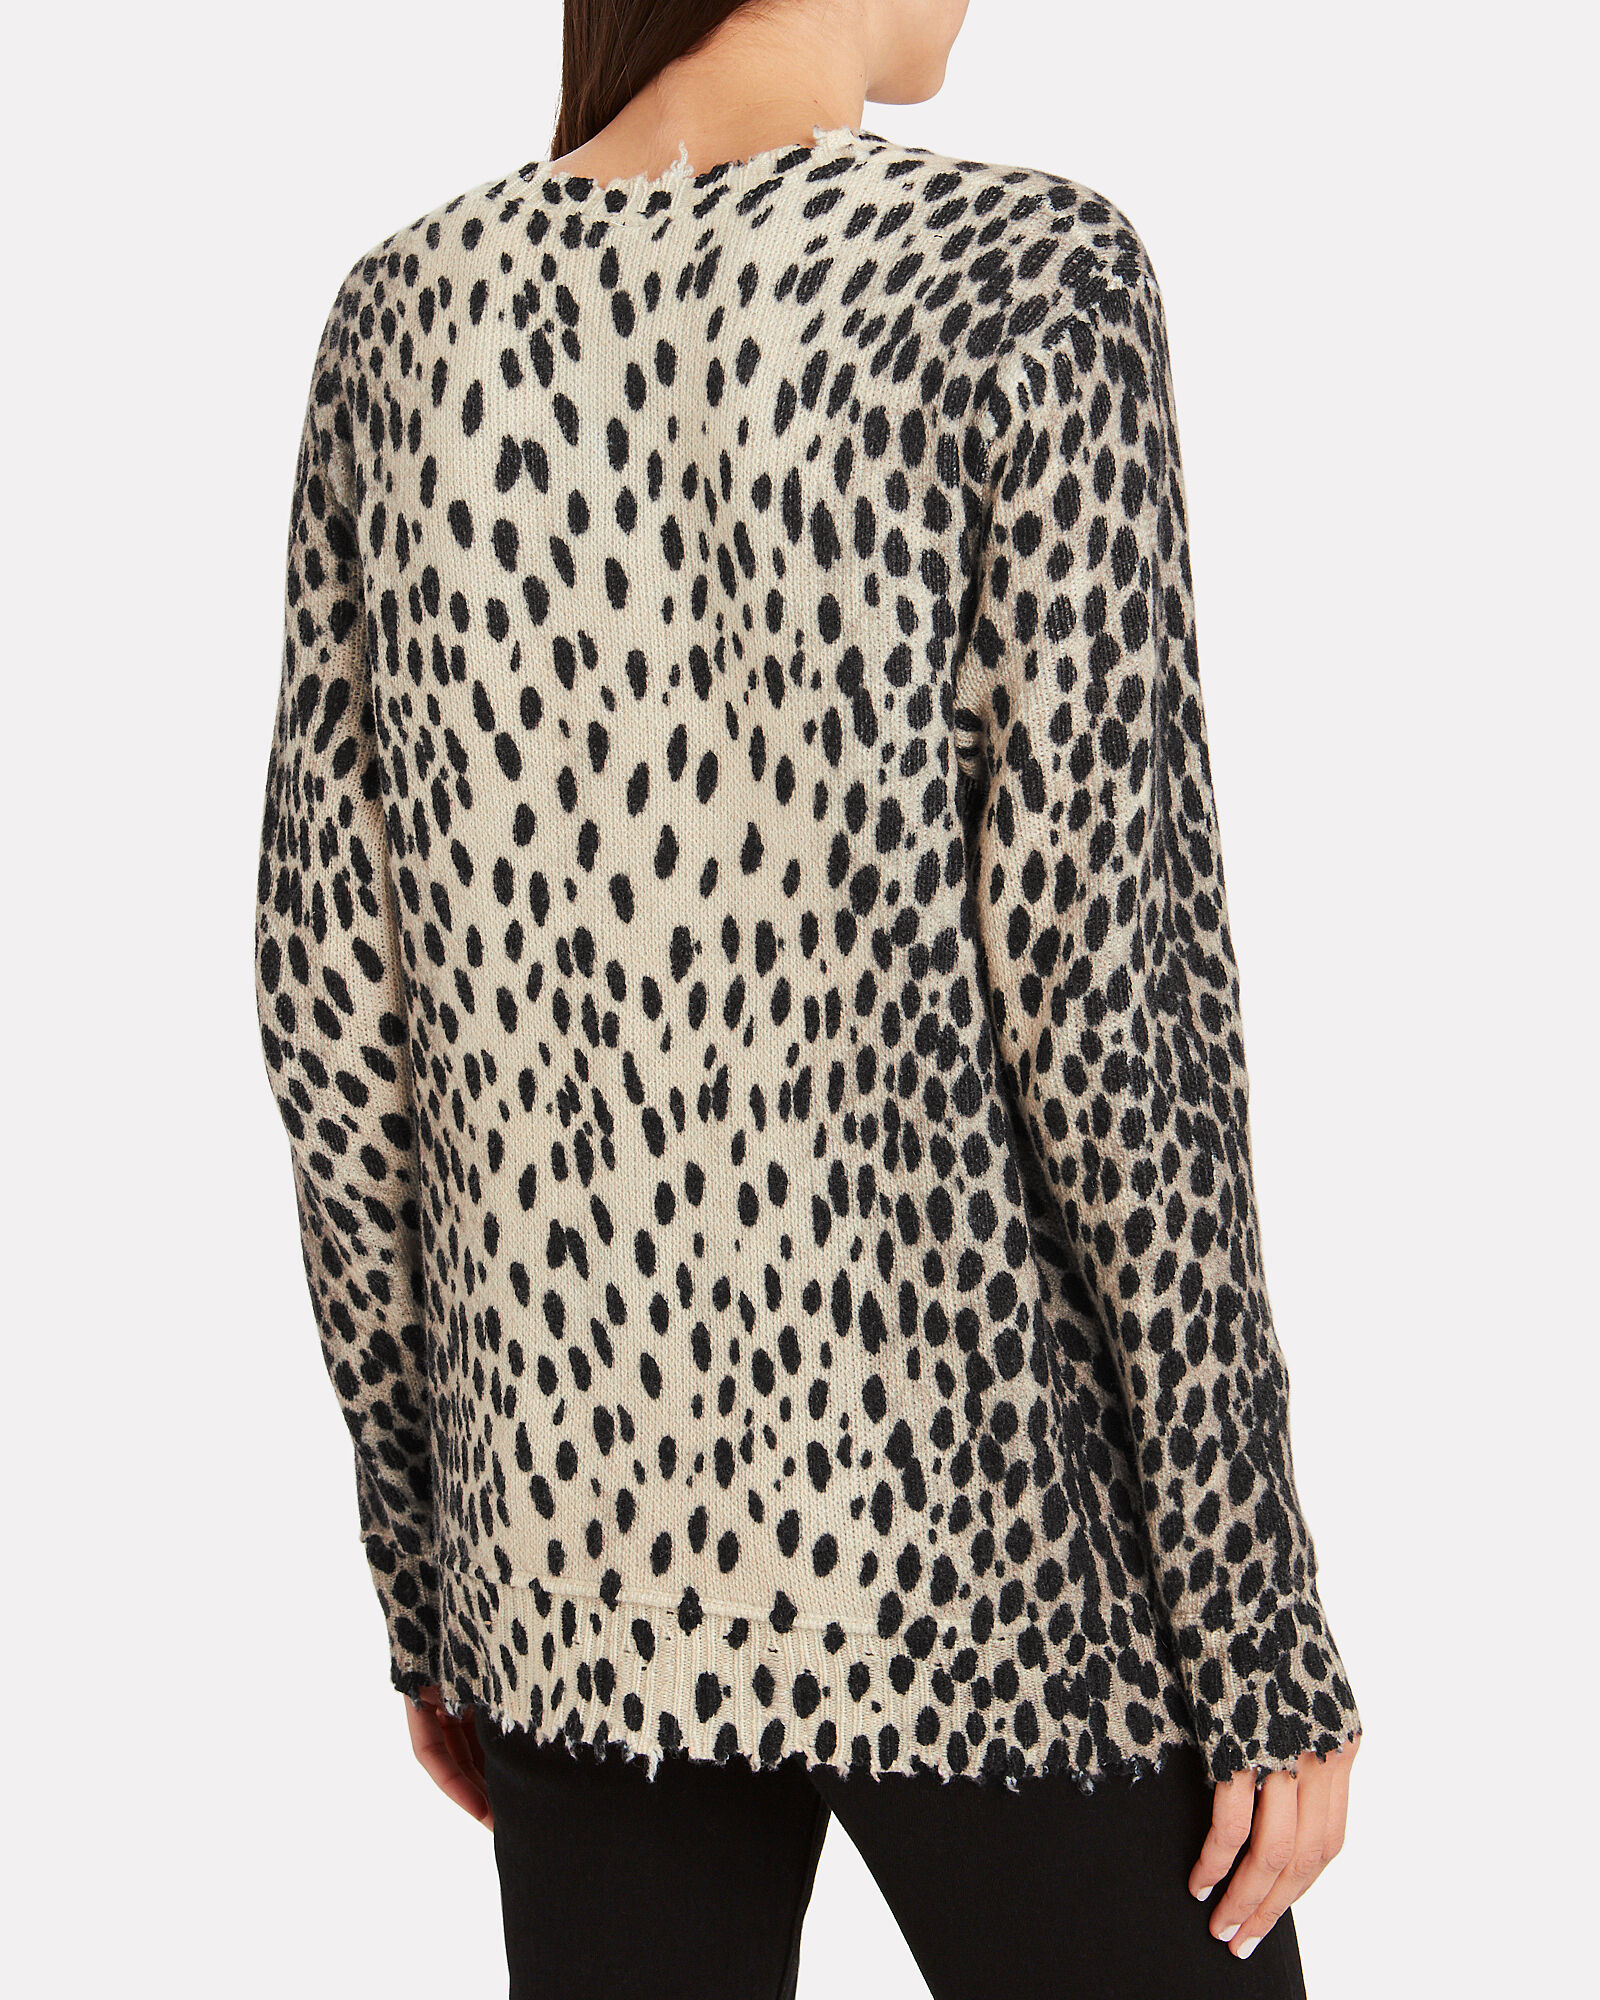 Cheetah Cashmere Crewneck Sweater, MULTI, hi-res